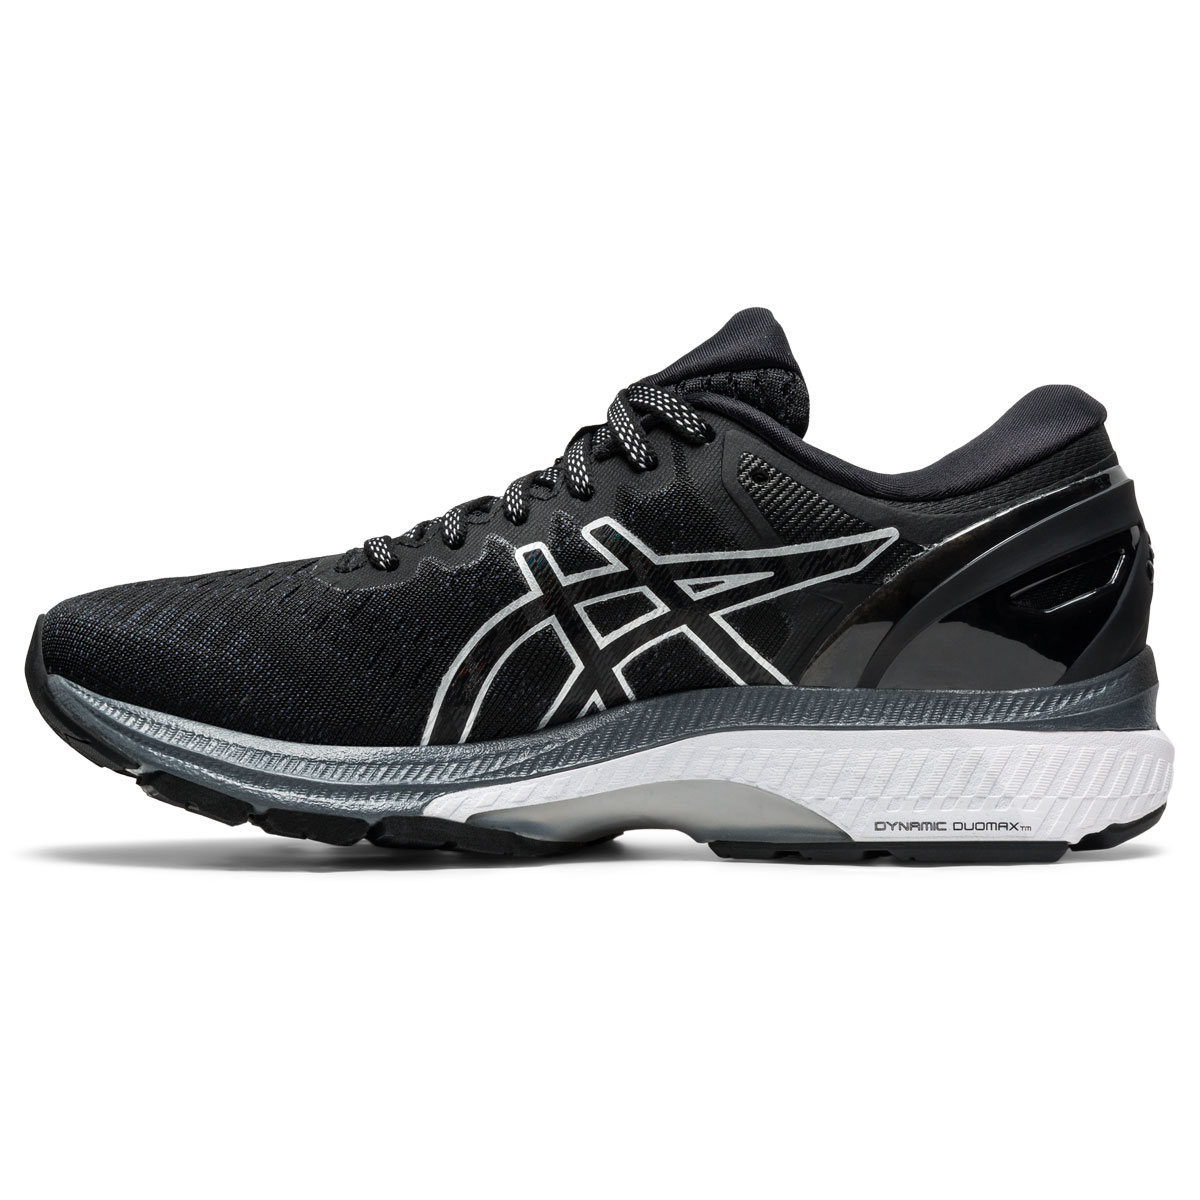 Women's Asics GEL-Kayano 27 Running Shoe - Color: Black/Pure Silv (Regular Width) - Size: 5, Black/Pure Silv, large, image 2